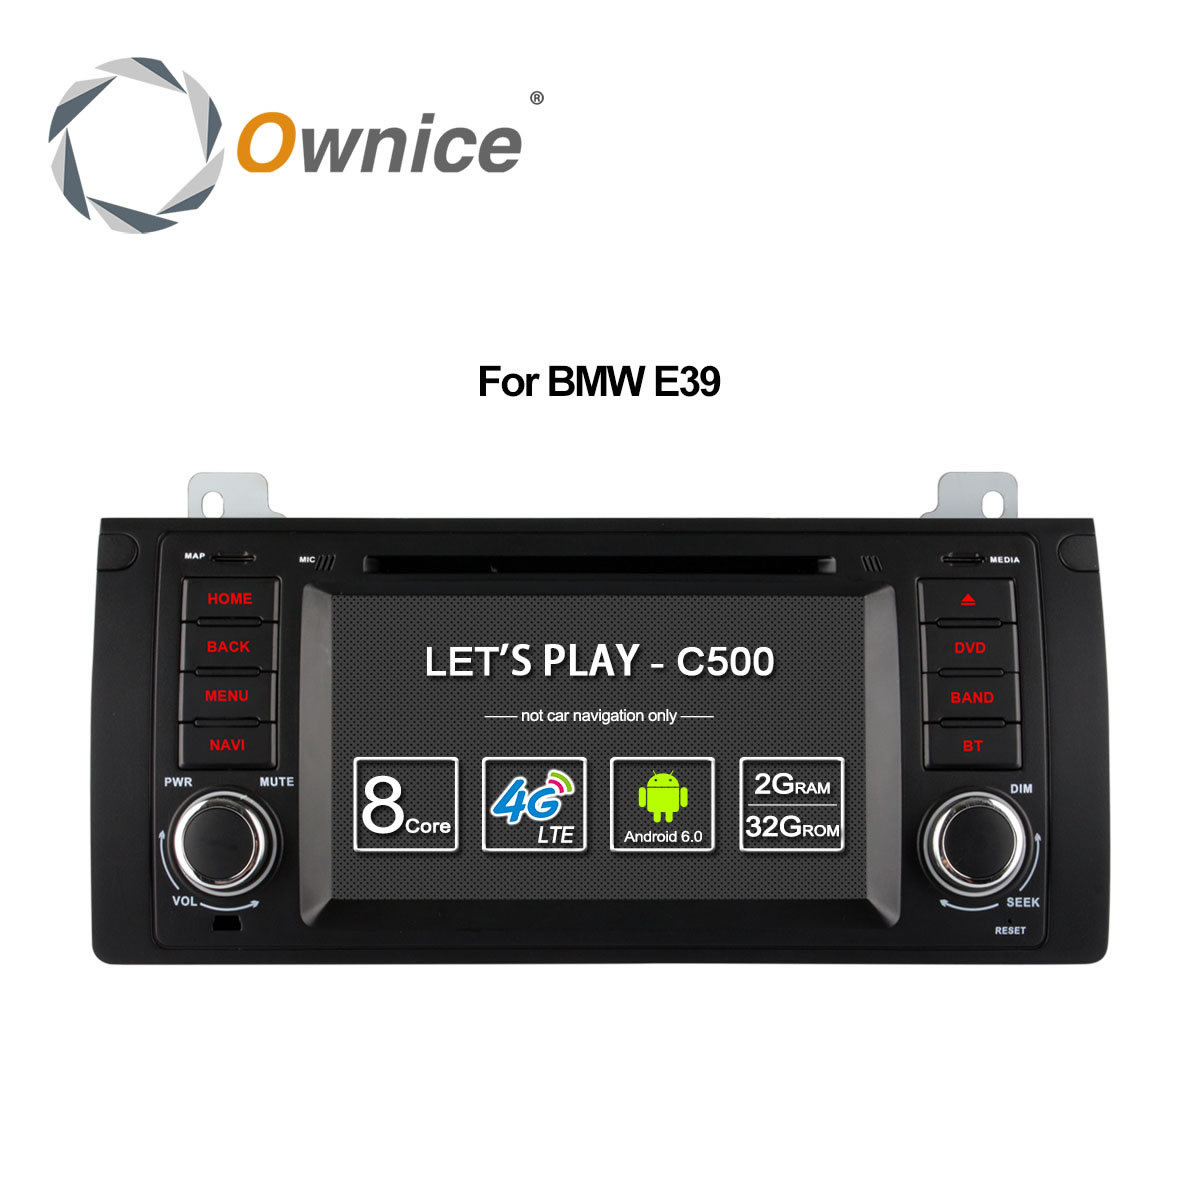 Ownice 4G SIM LTE Android 6.0 Octa Core 32G ROM In Dash Car DVD Player For <font><b>BMW</b></font> E39 X5 M5 <font><b>E38</b></font> E53 With Wifi GPS Navi <font><b>Radio</b></font> FM image